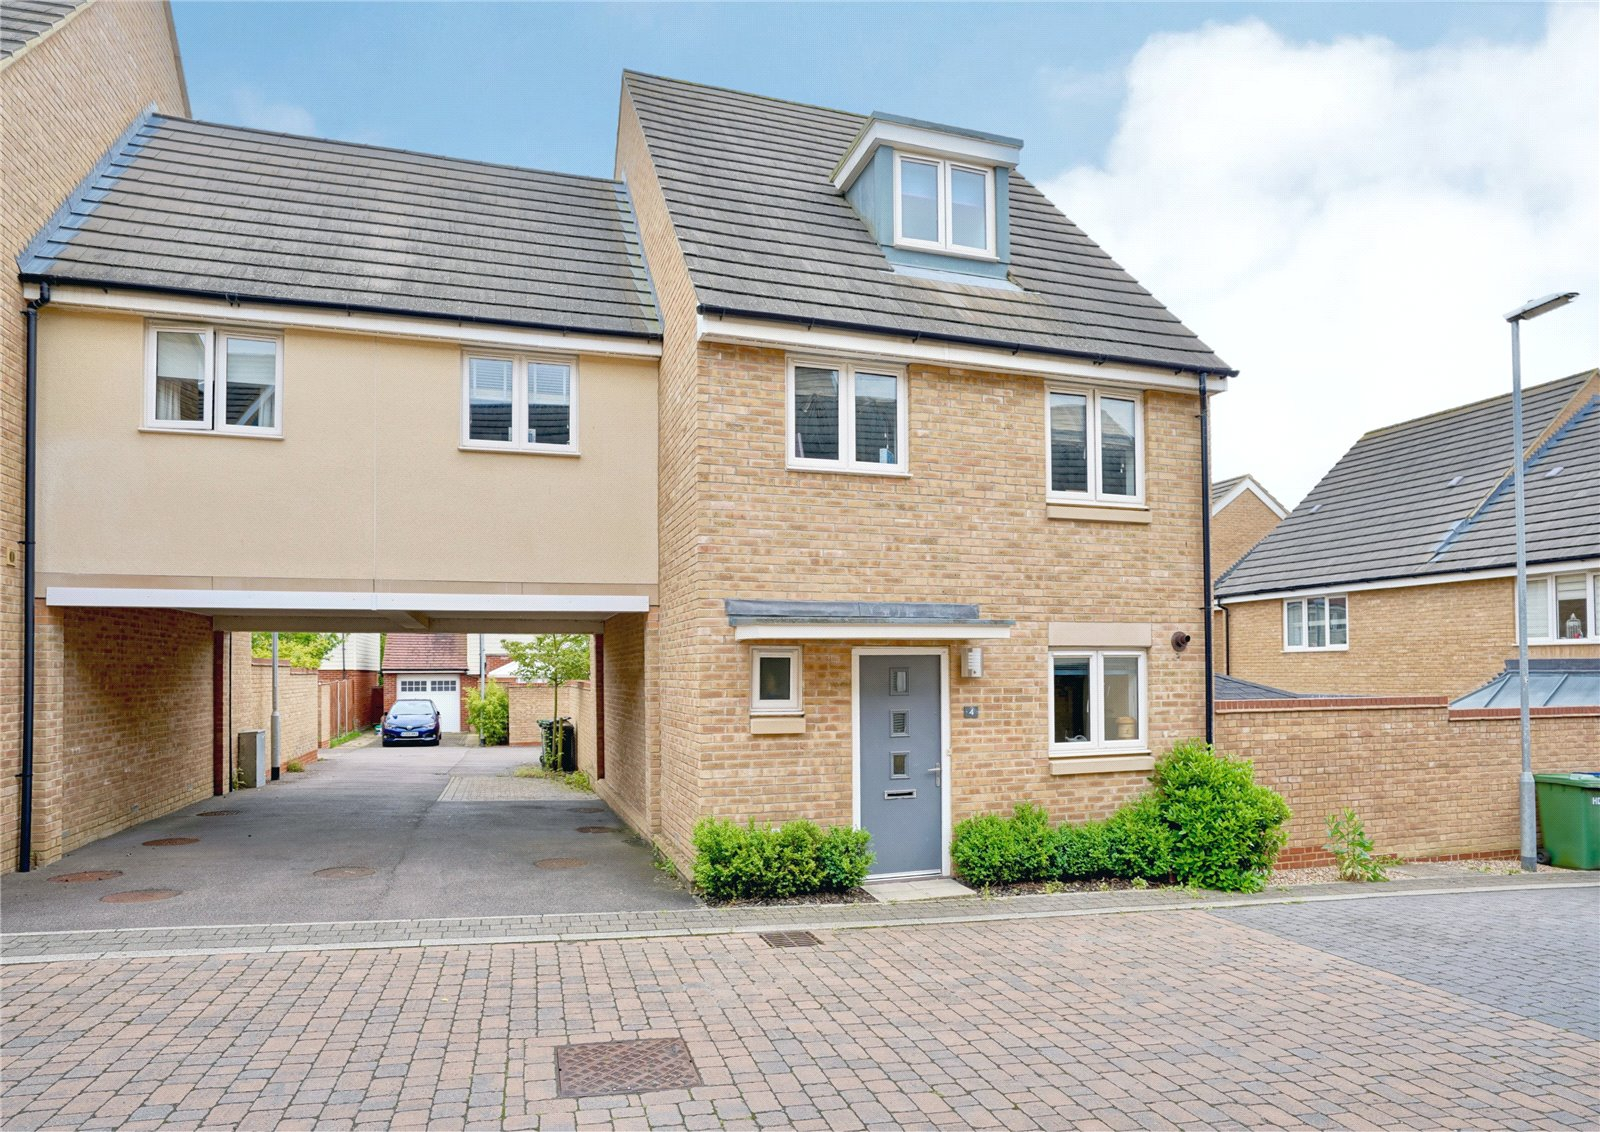 5 bed house for sale in Anderson Close, St. Neots, PE19